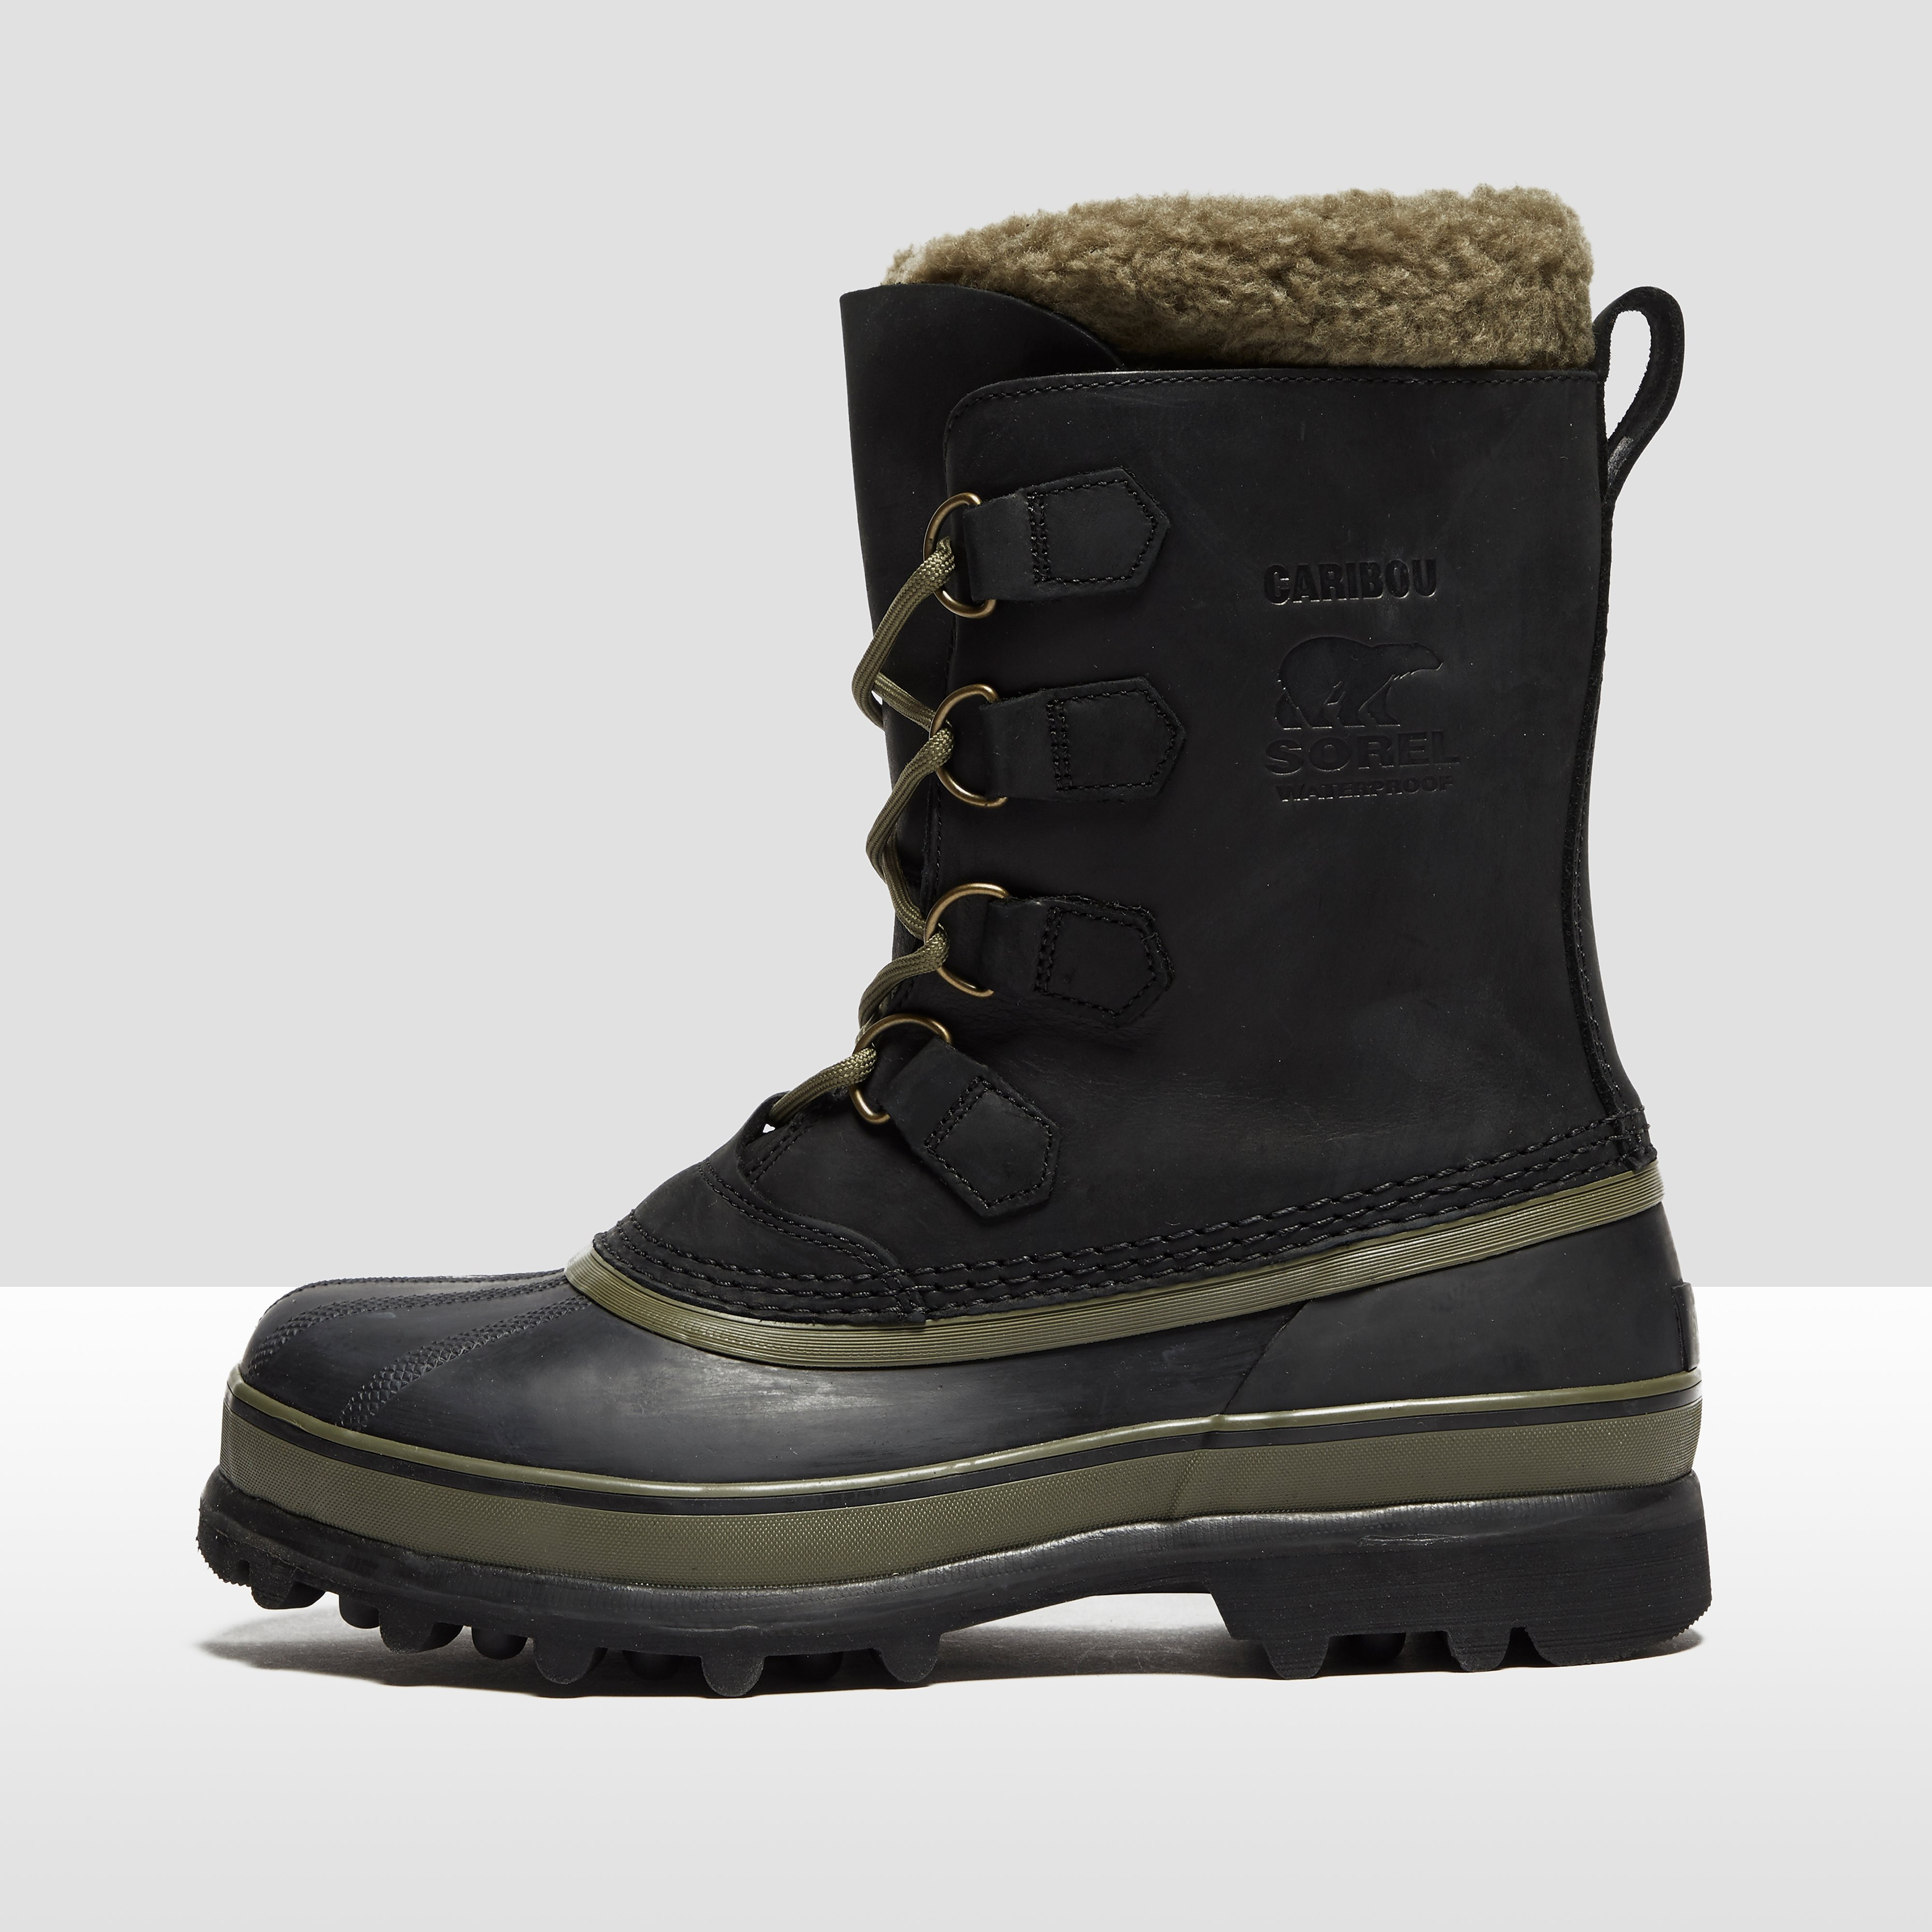 Sorel Caribou WL Men's Leather Waterproof Boots